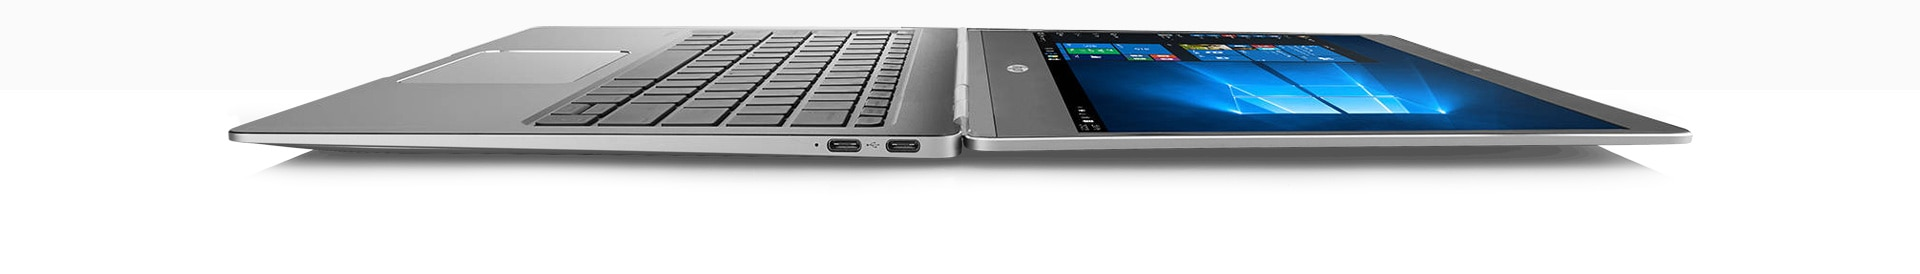 Laptop convertible HP EliteBook x360